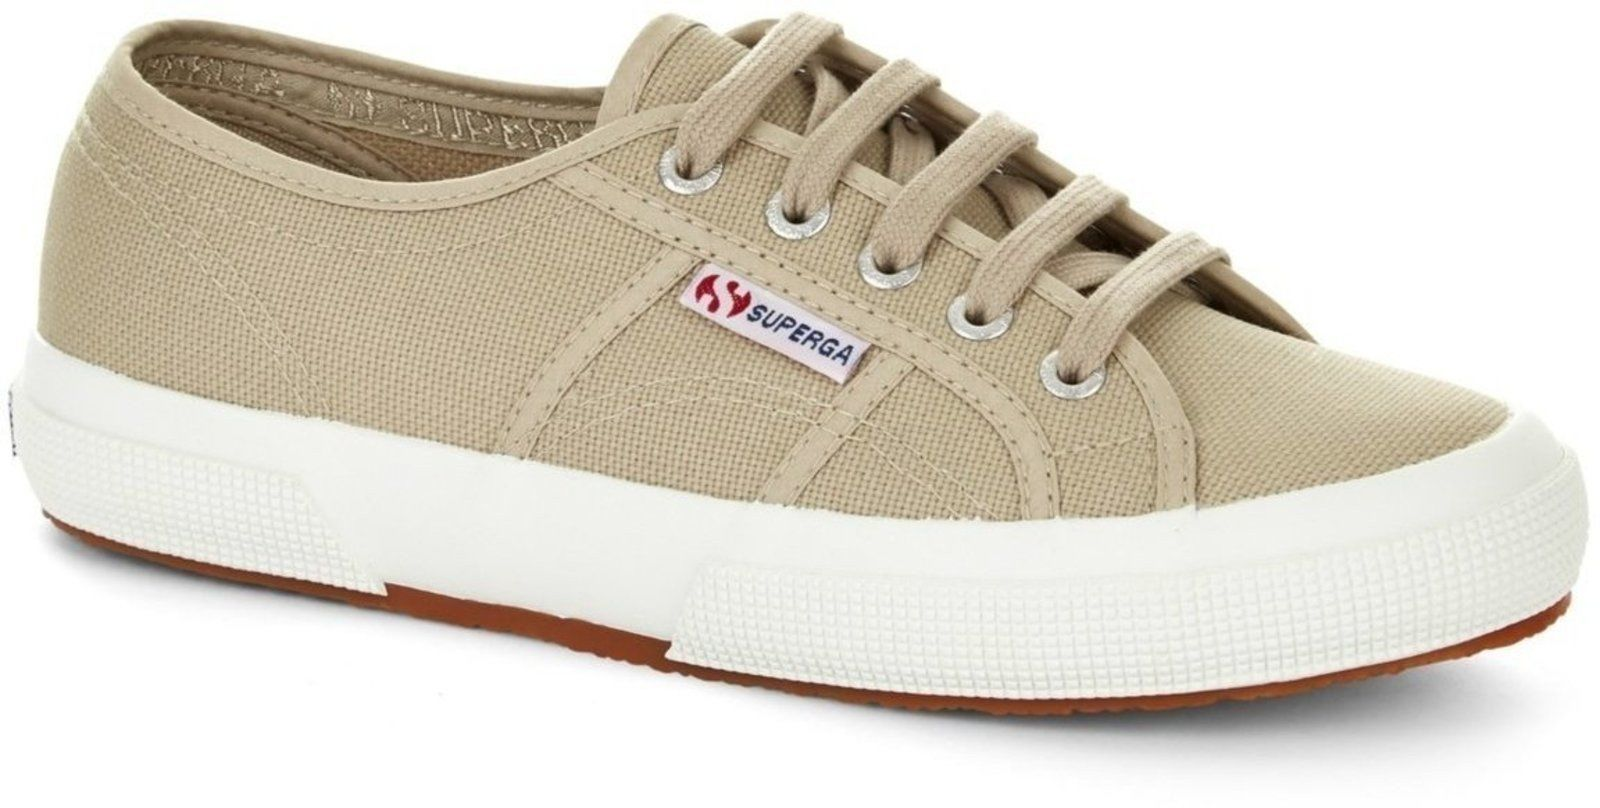 Superga 2750 Cotu Womens Trainers Beige Beige Moonlight - UK 5 (EU 38)